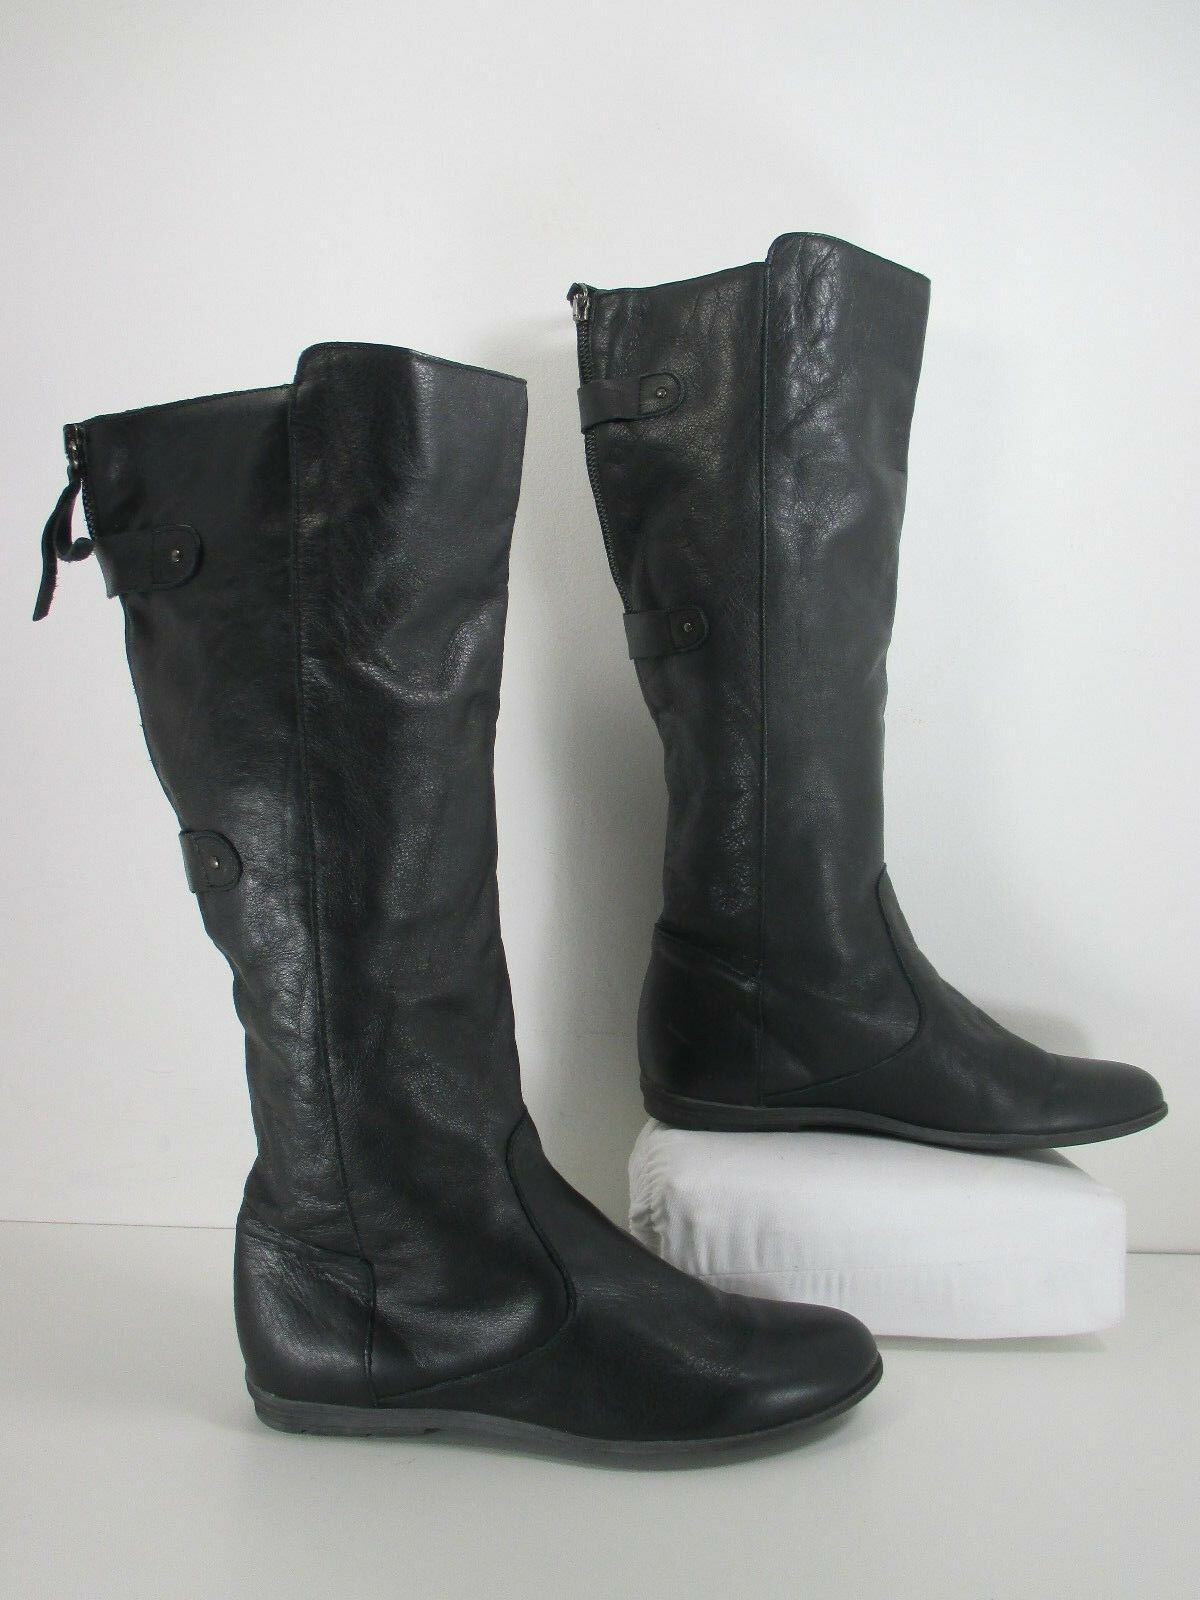 TopShop DOWNTOWN Leather Knee High Fashion Riding Boots Black Size 8.5 EU 39